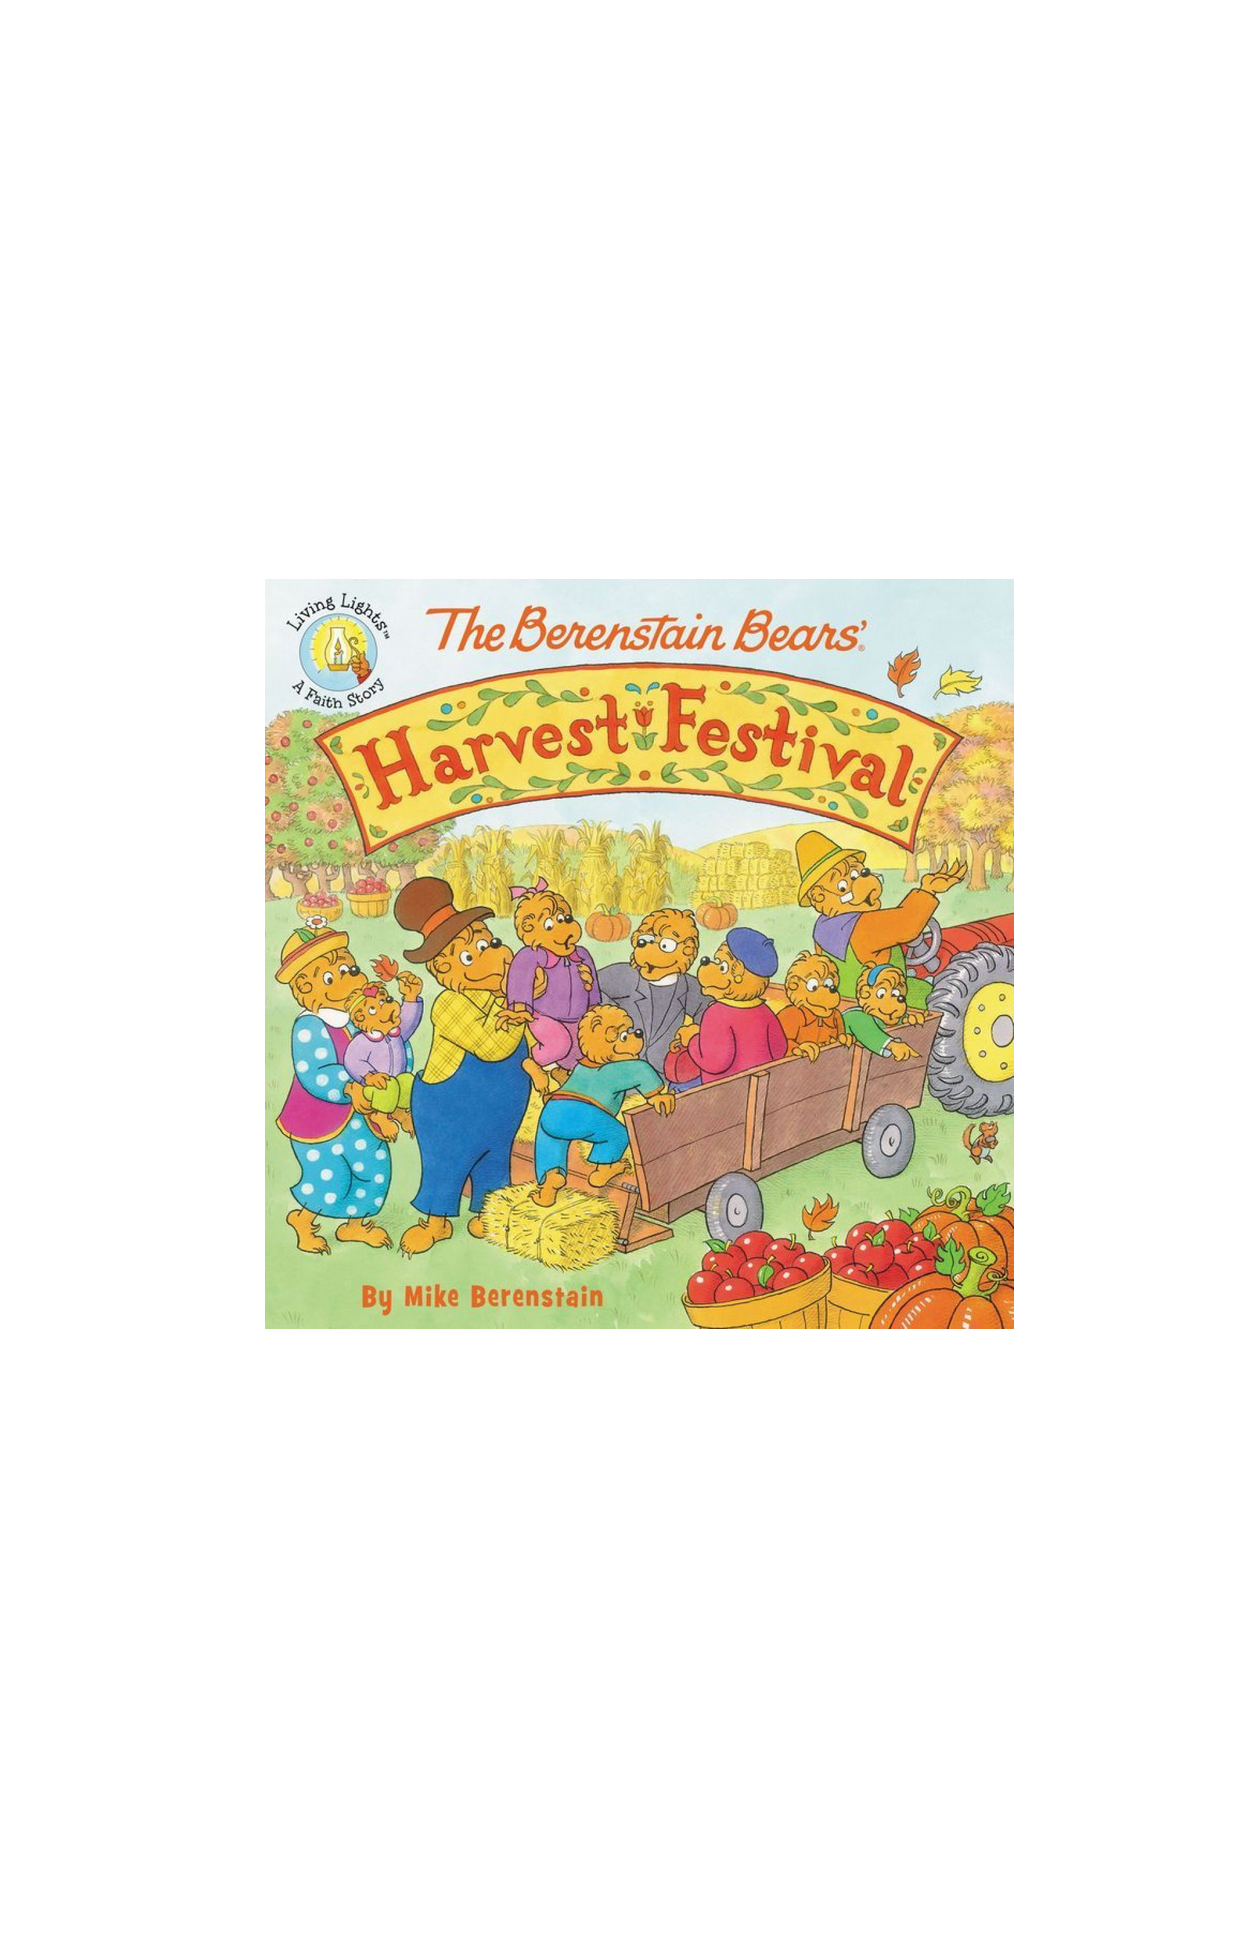 The Berenstain Bears' Harvest Festival by Mike Berenstain